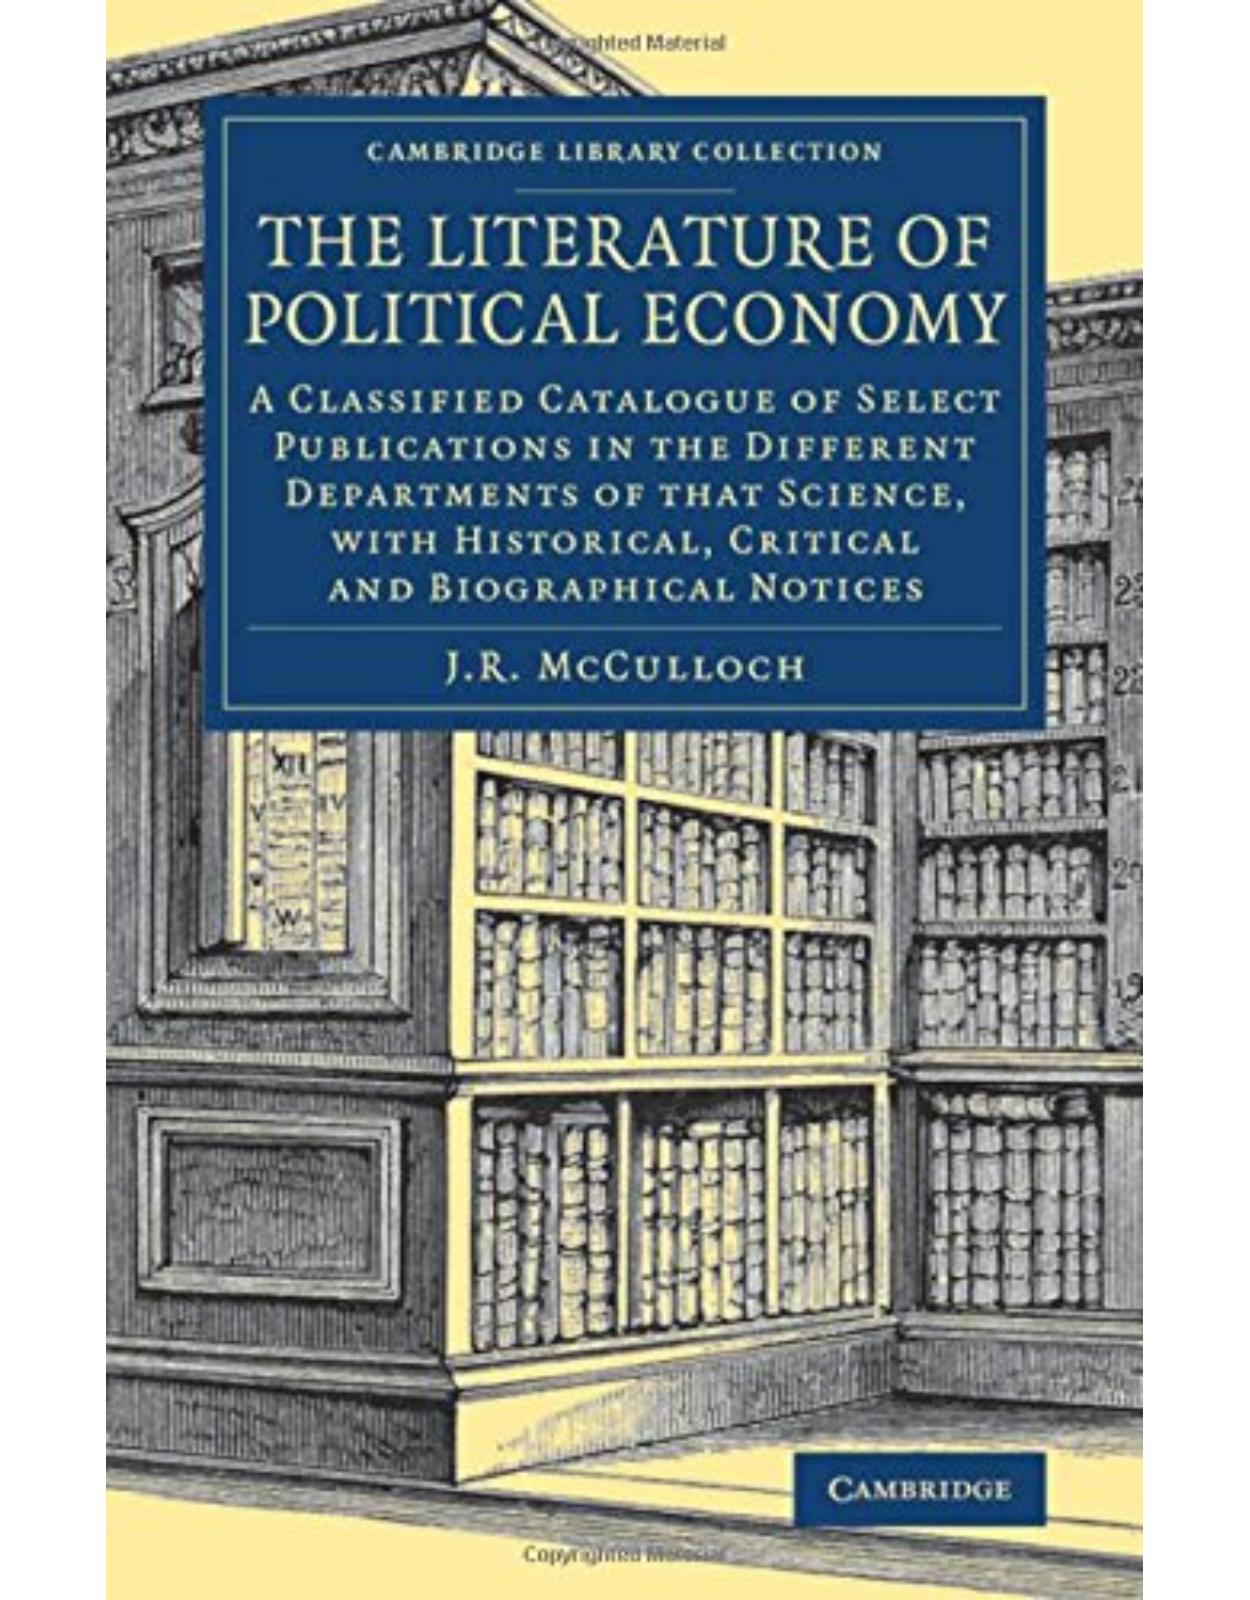 The Literature of Political Economy: A Classified Catalogue of Select Publications in the Different Departments of that Science, with Historical, ... - British and Irish History, 19th Century)